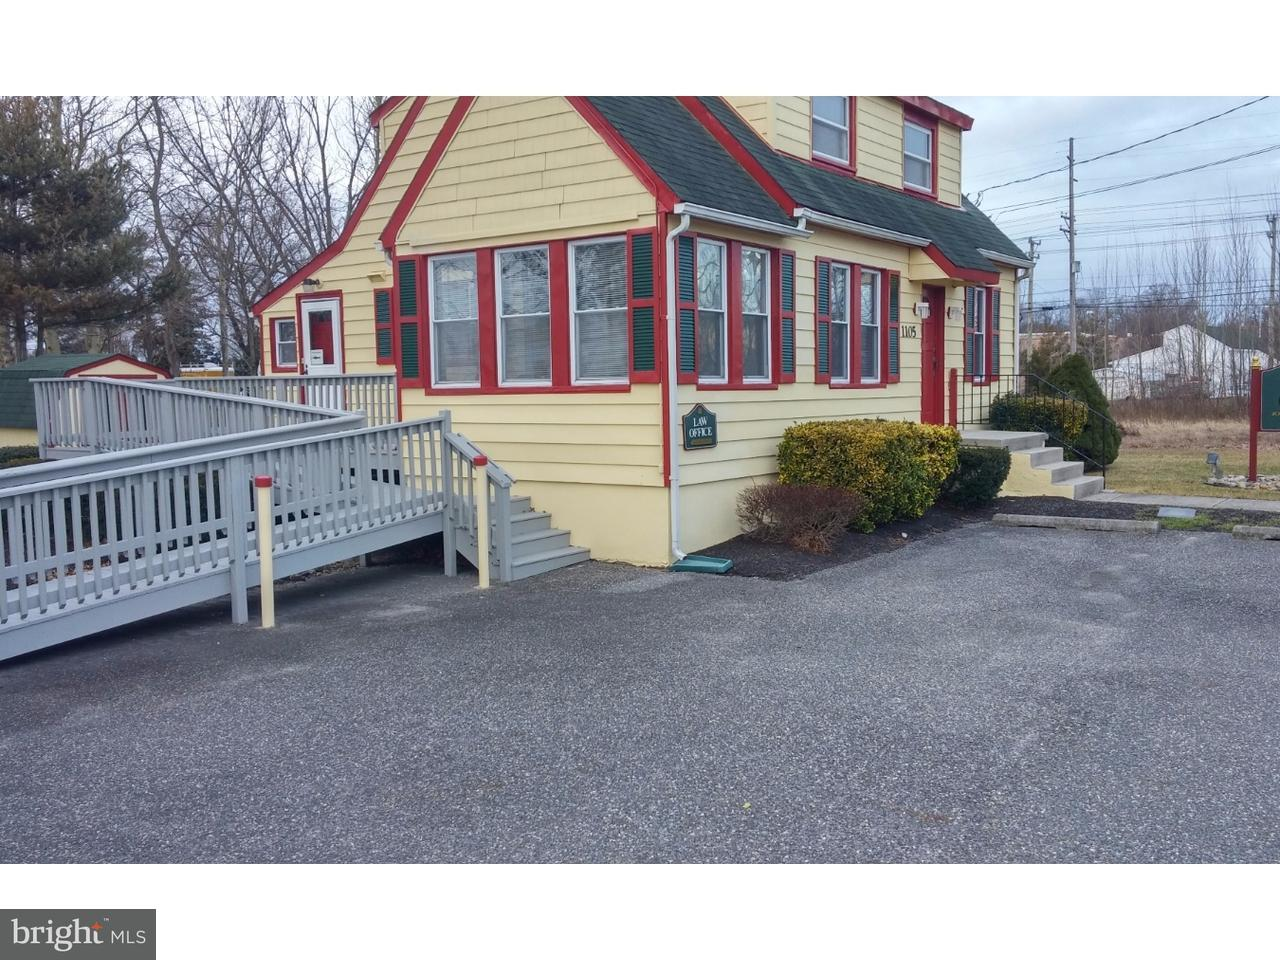 Single Family Home for Sale at 1105 ROUTE 47 S Rio Grande, New Jersey 08242 United States